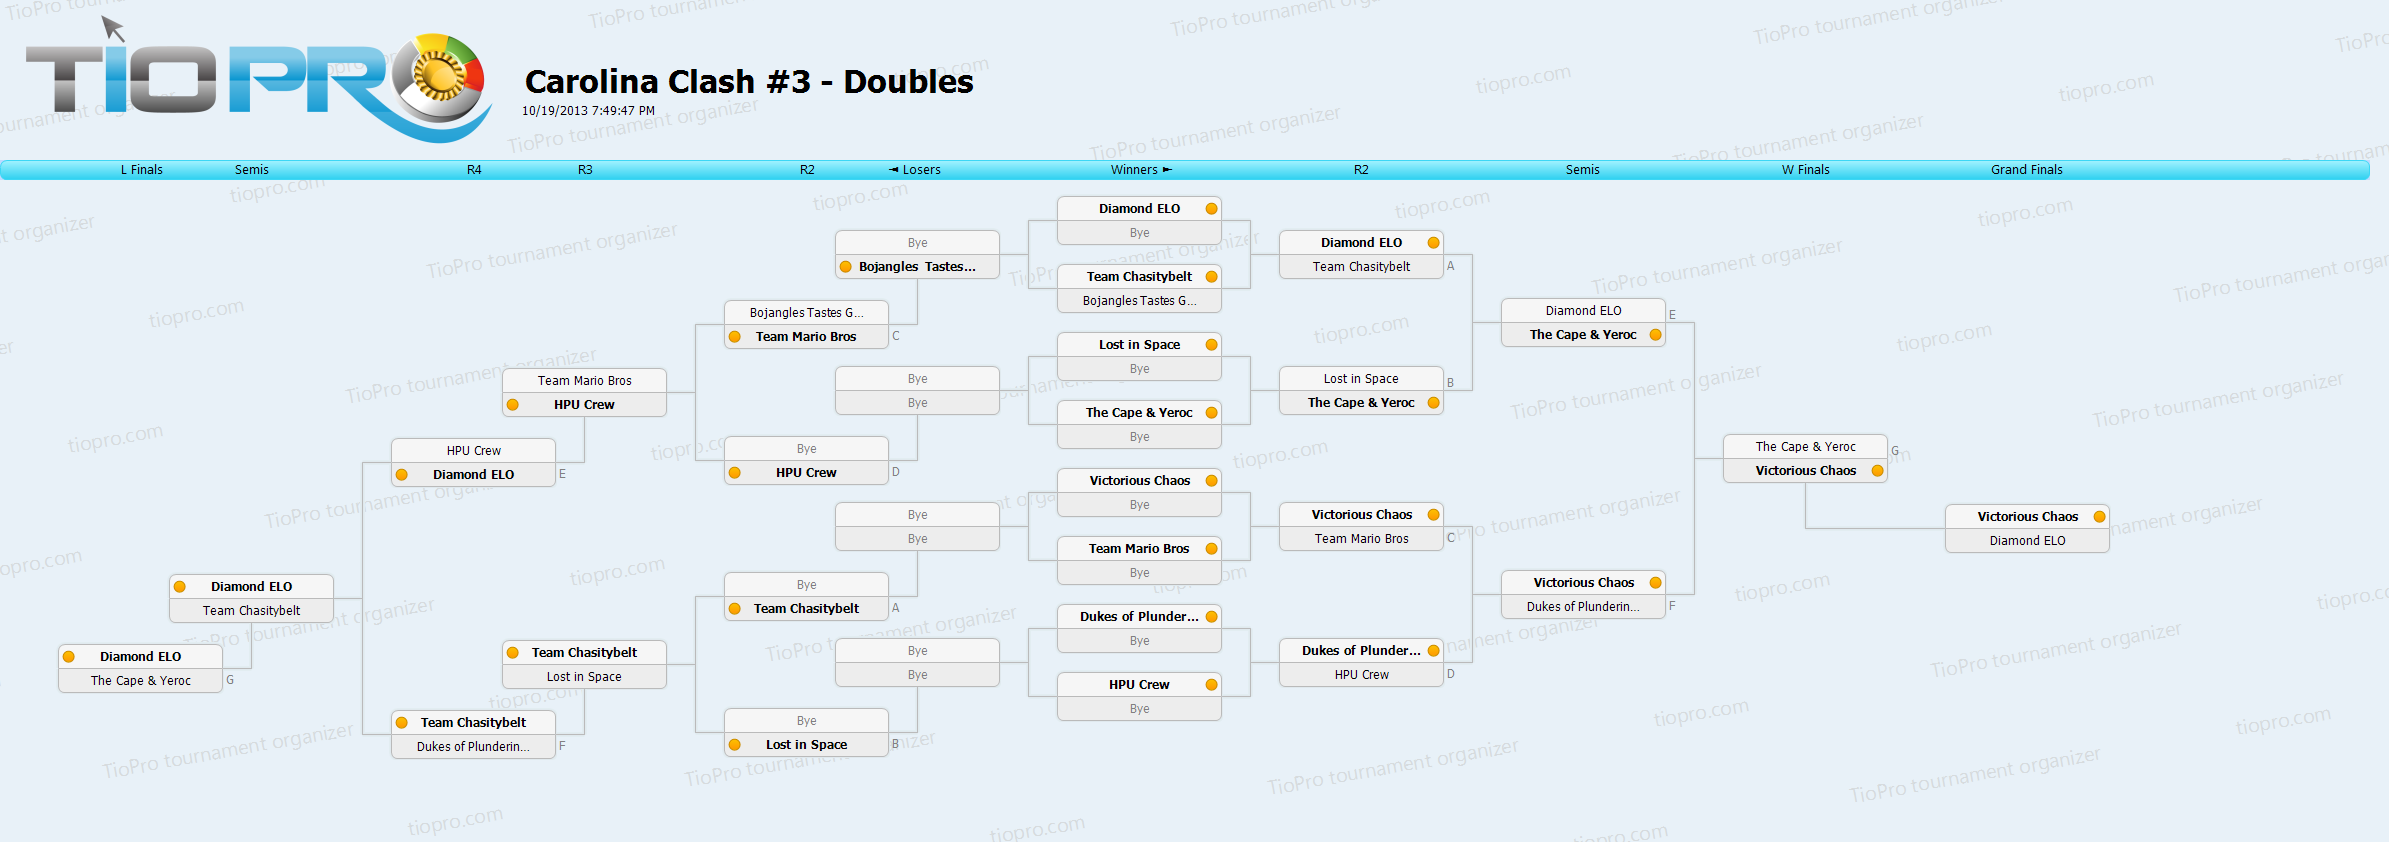 Doubles bracket.png